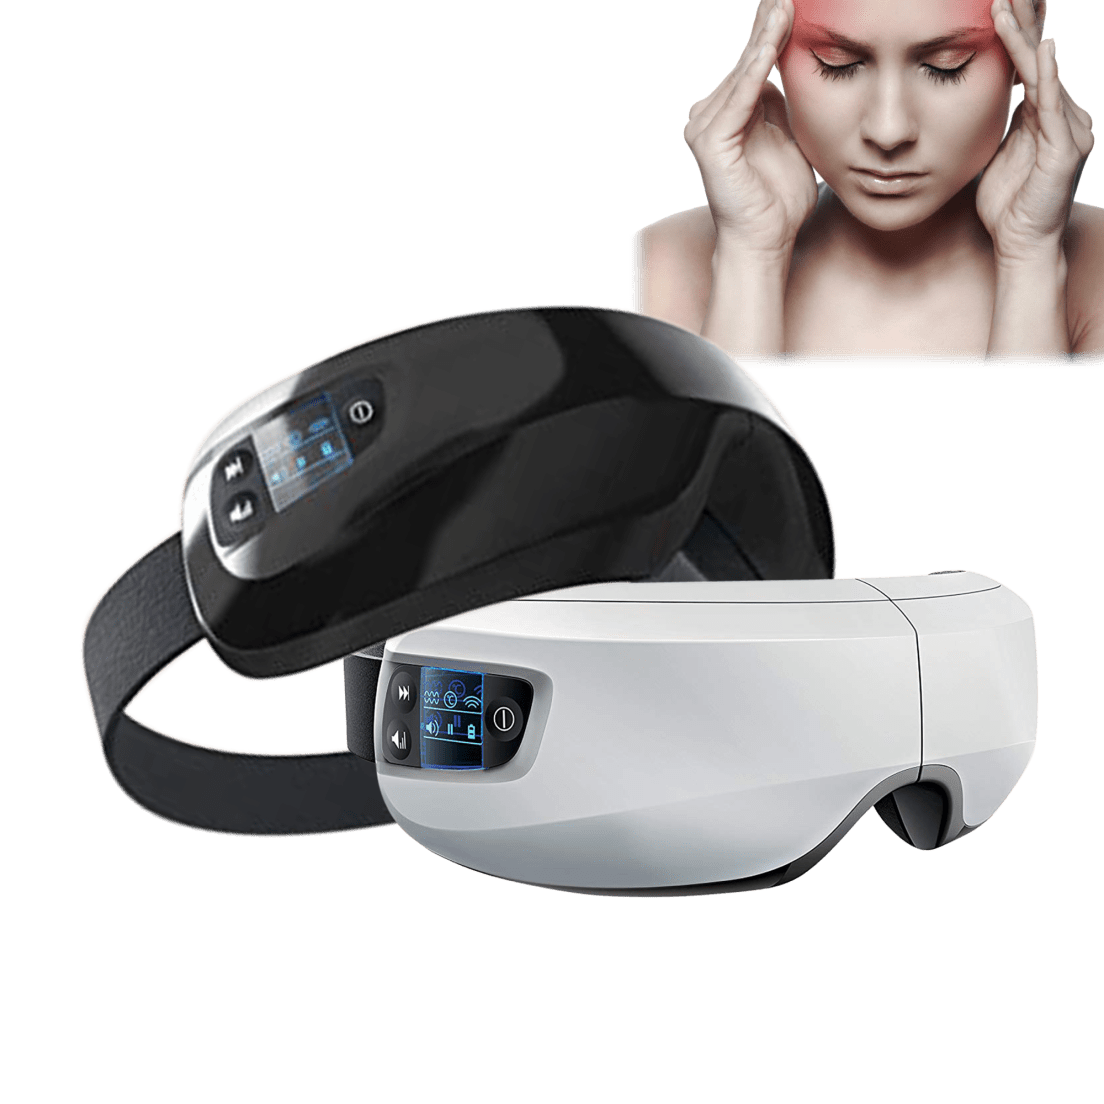 Sharper Image Heated Eye Massager With Soothing Sounds